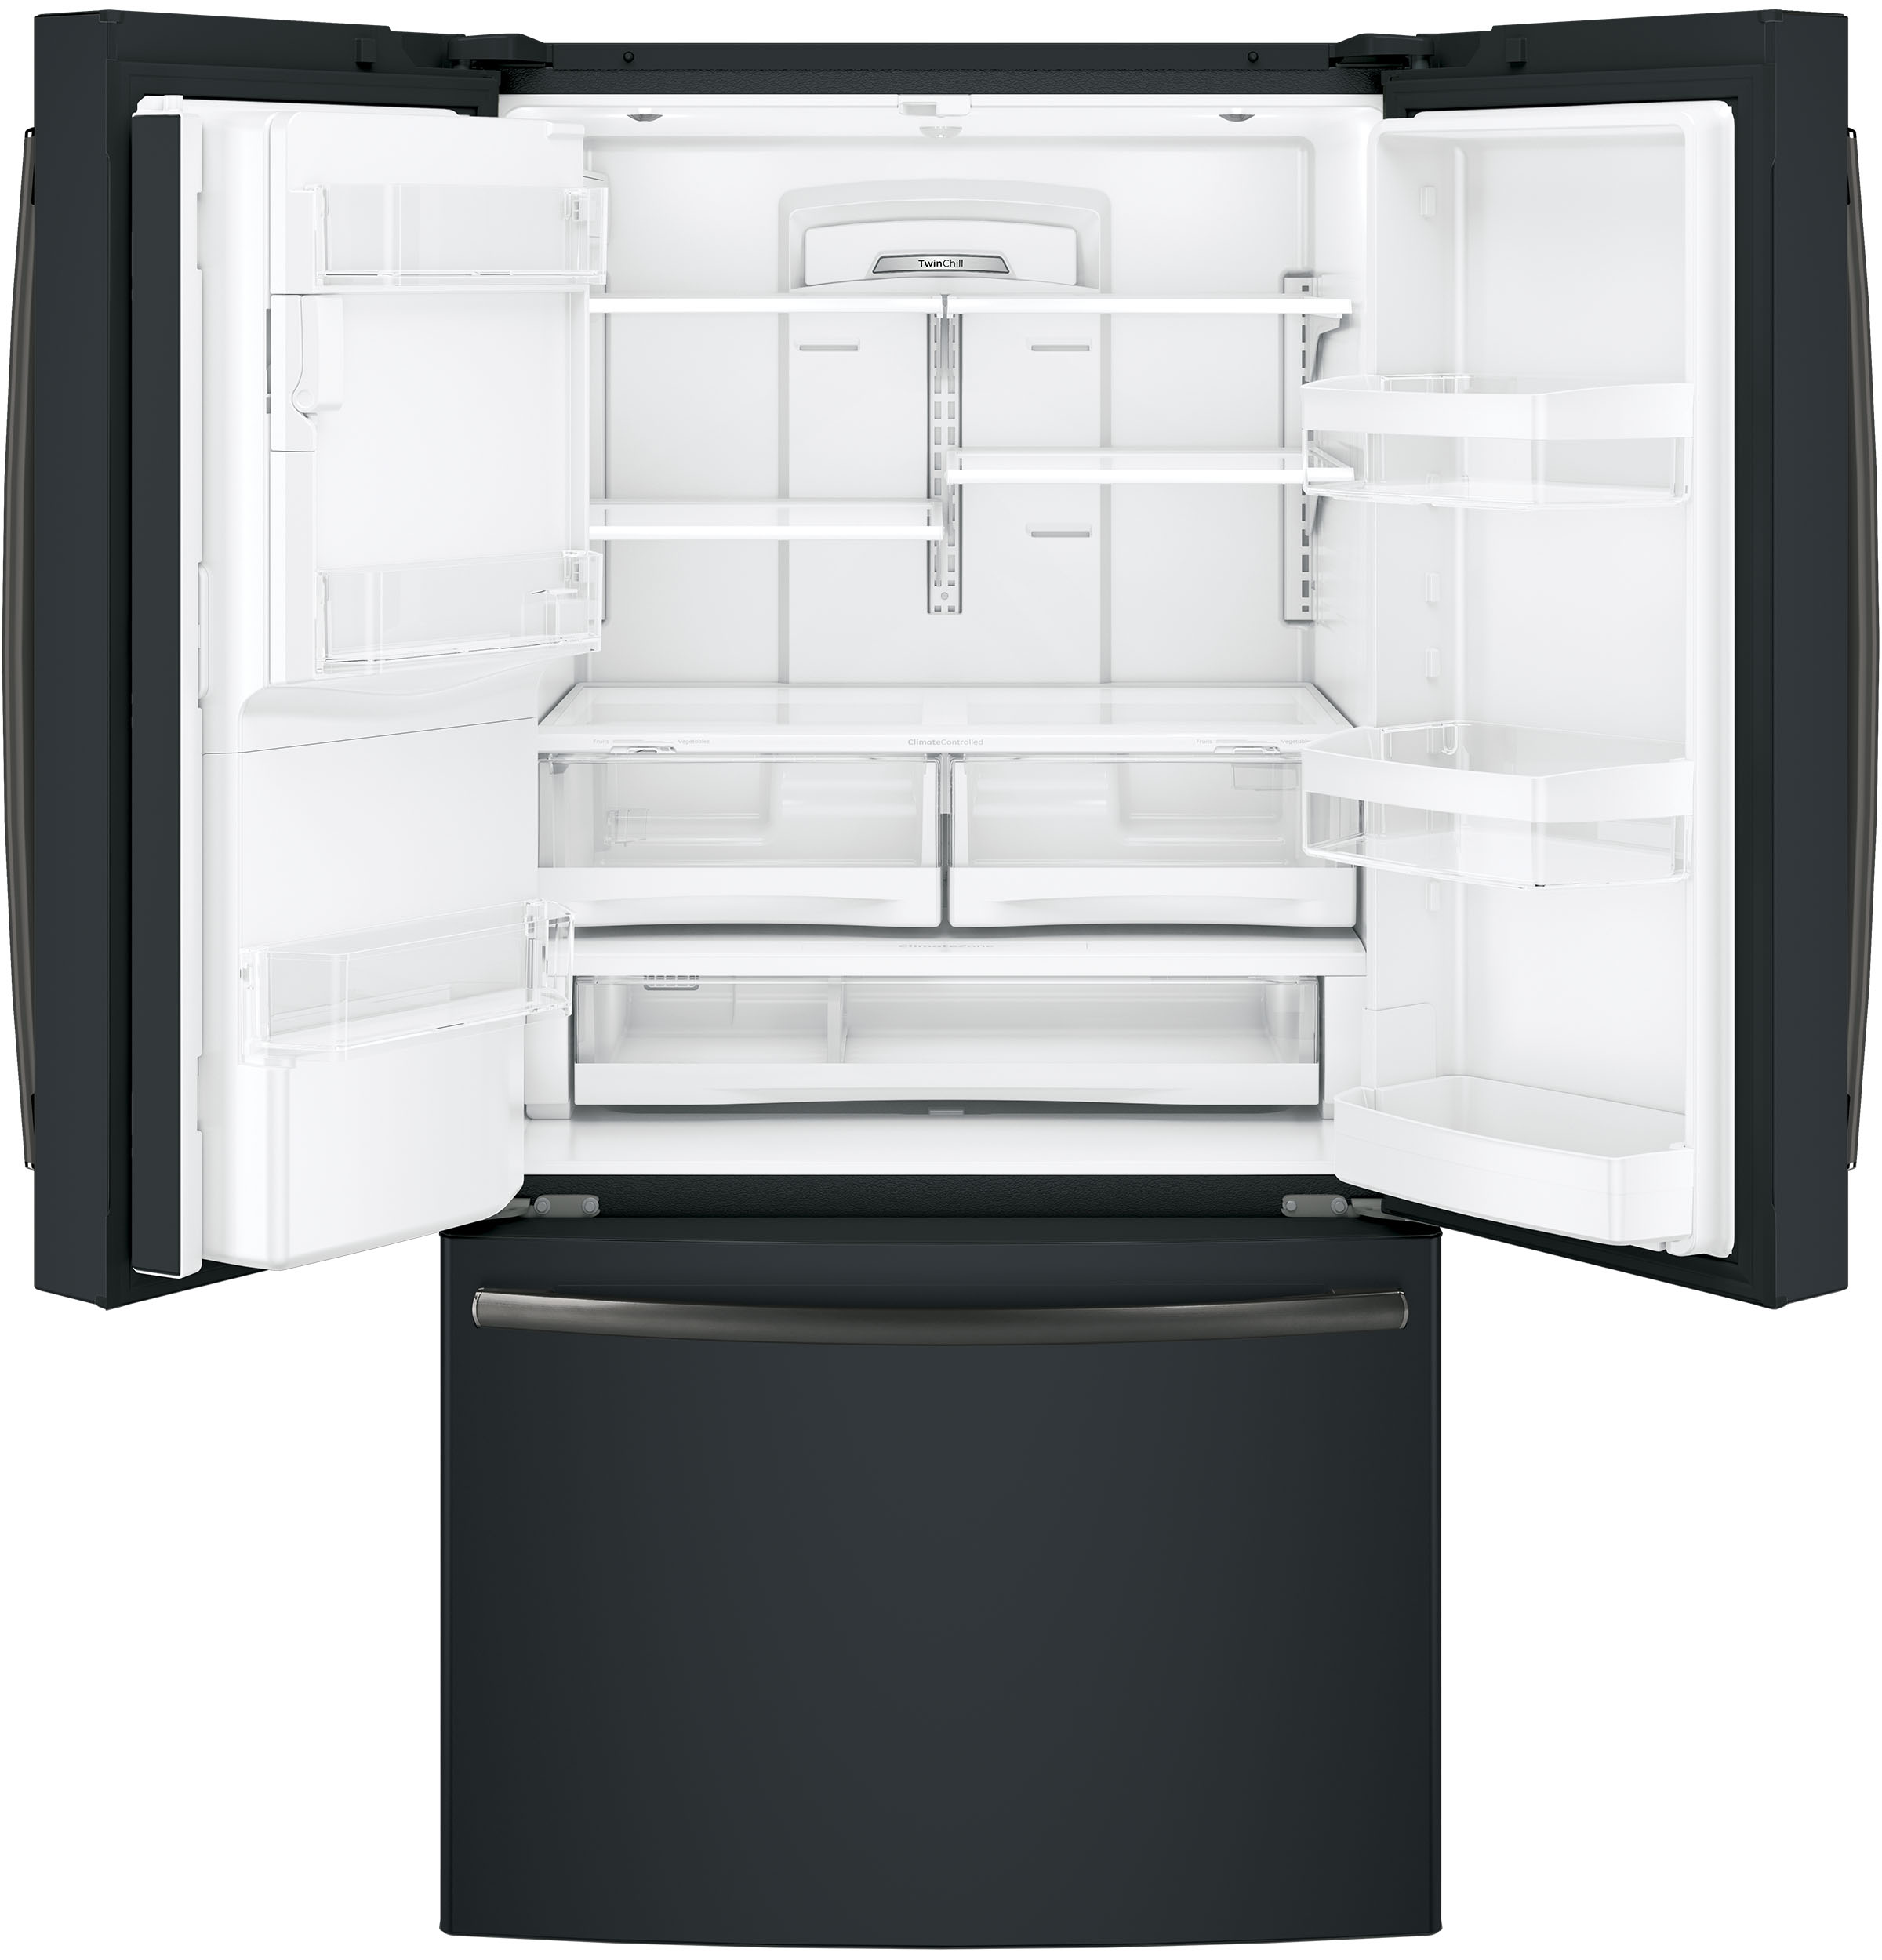 Model: GFE28GELDS | GE GE® ENERGY STAR® 27.8 Cu. Ft. French-Door Refrigerator